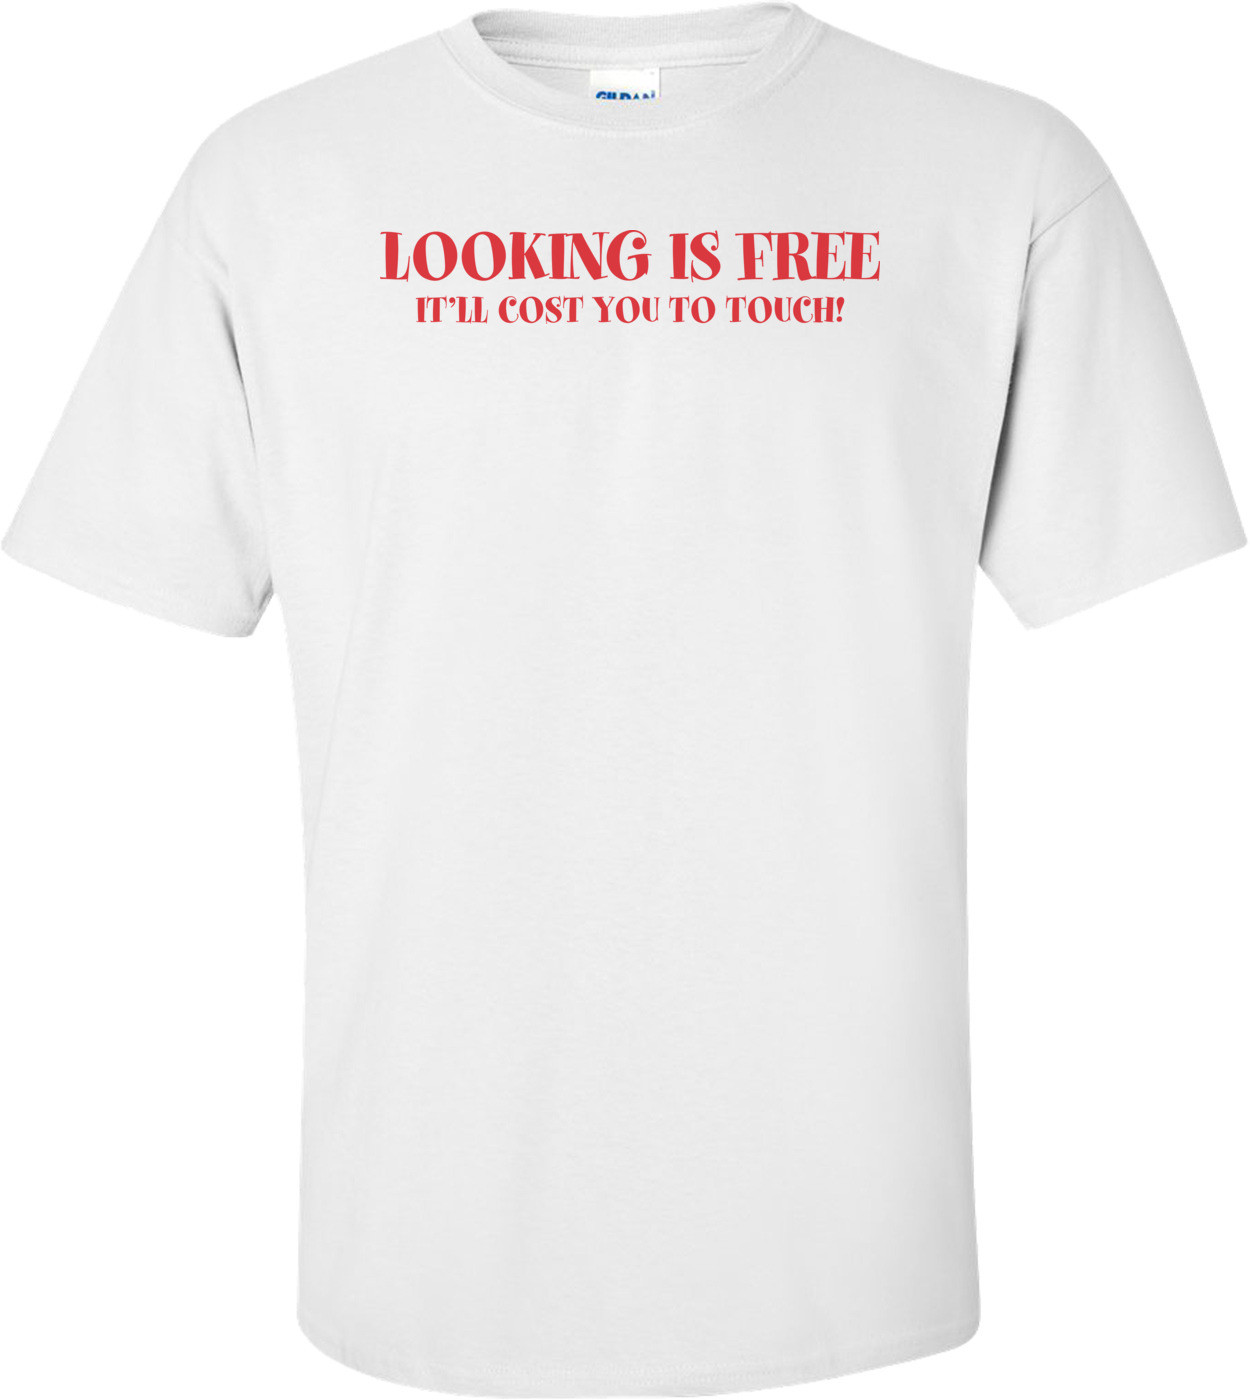 Looking Is Free It'll Cost You To Touch T-shirt